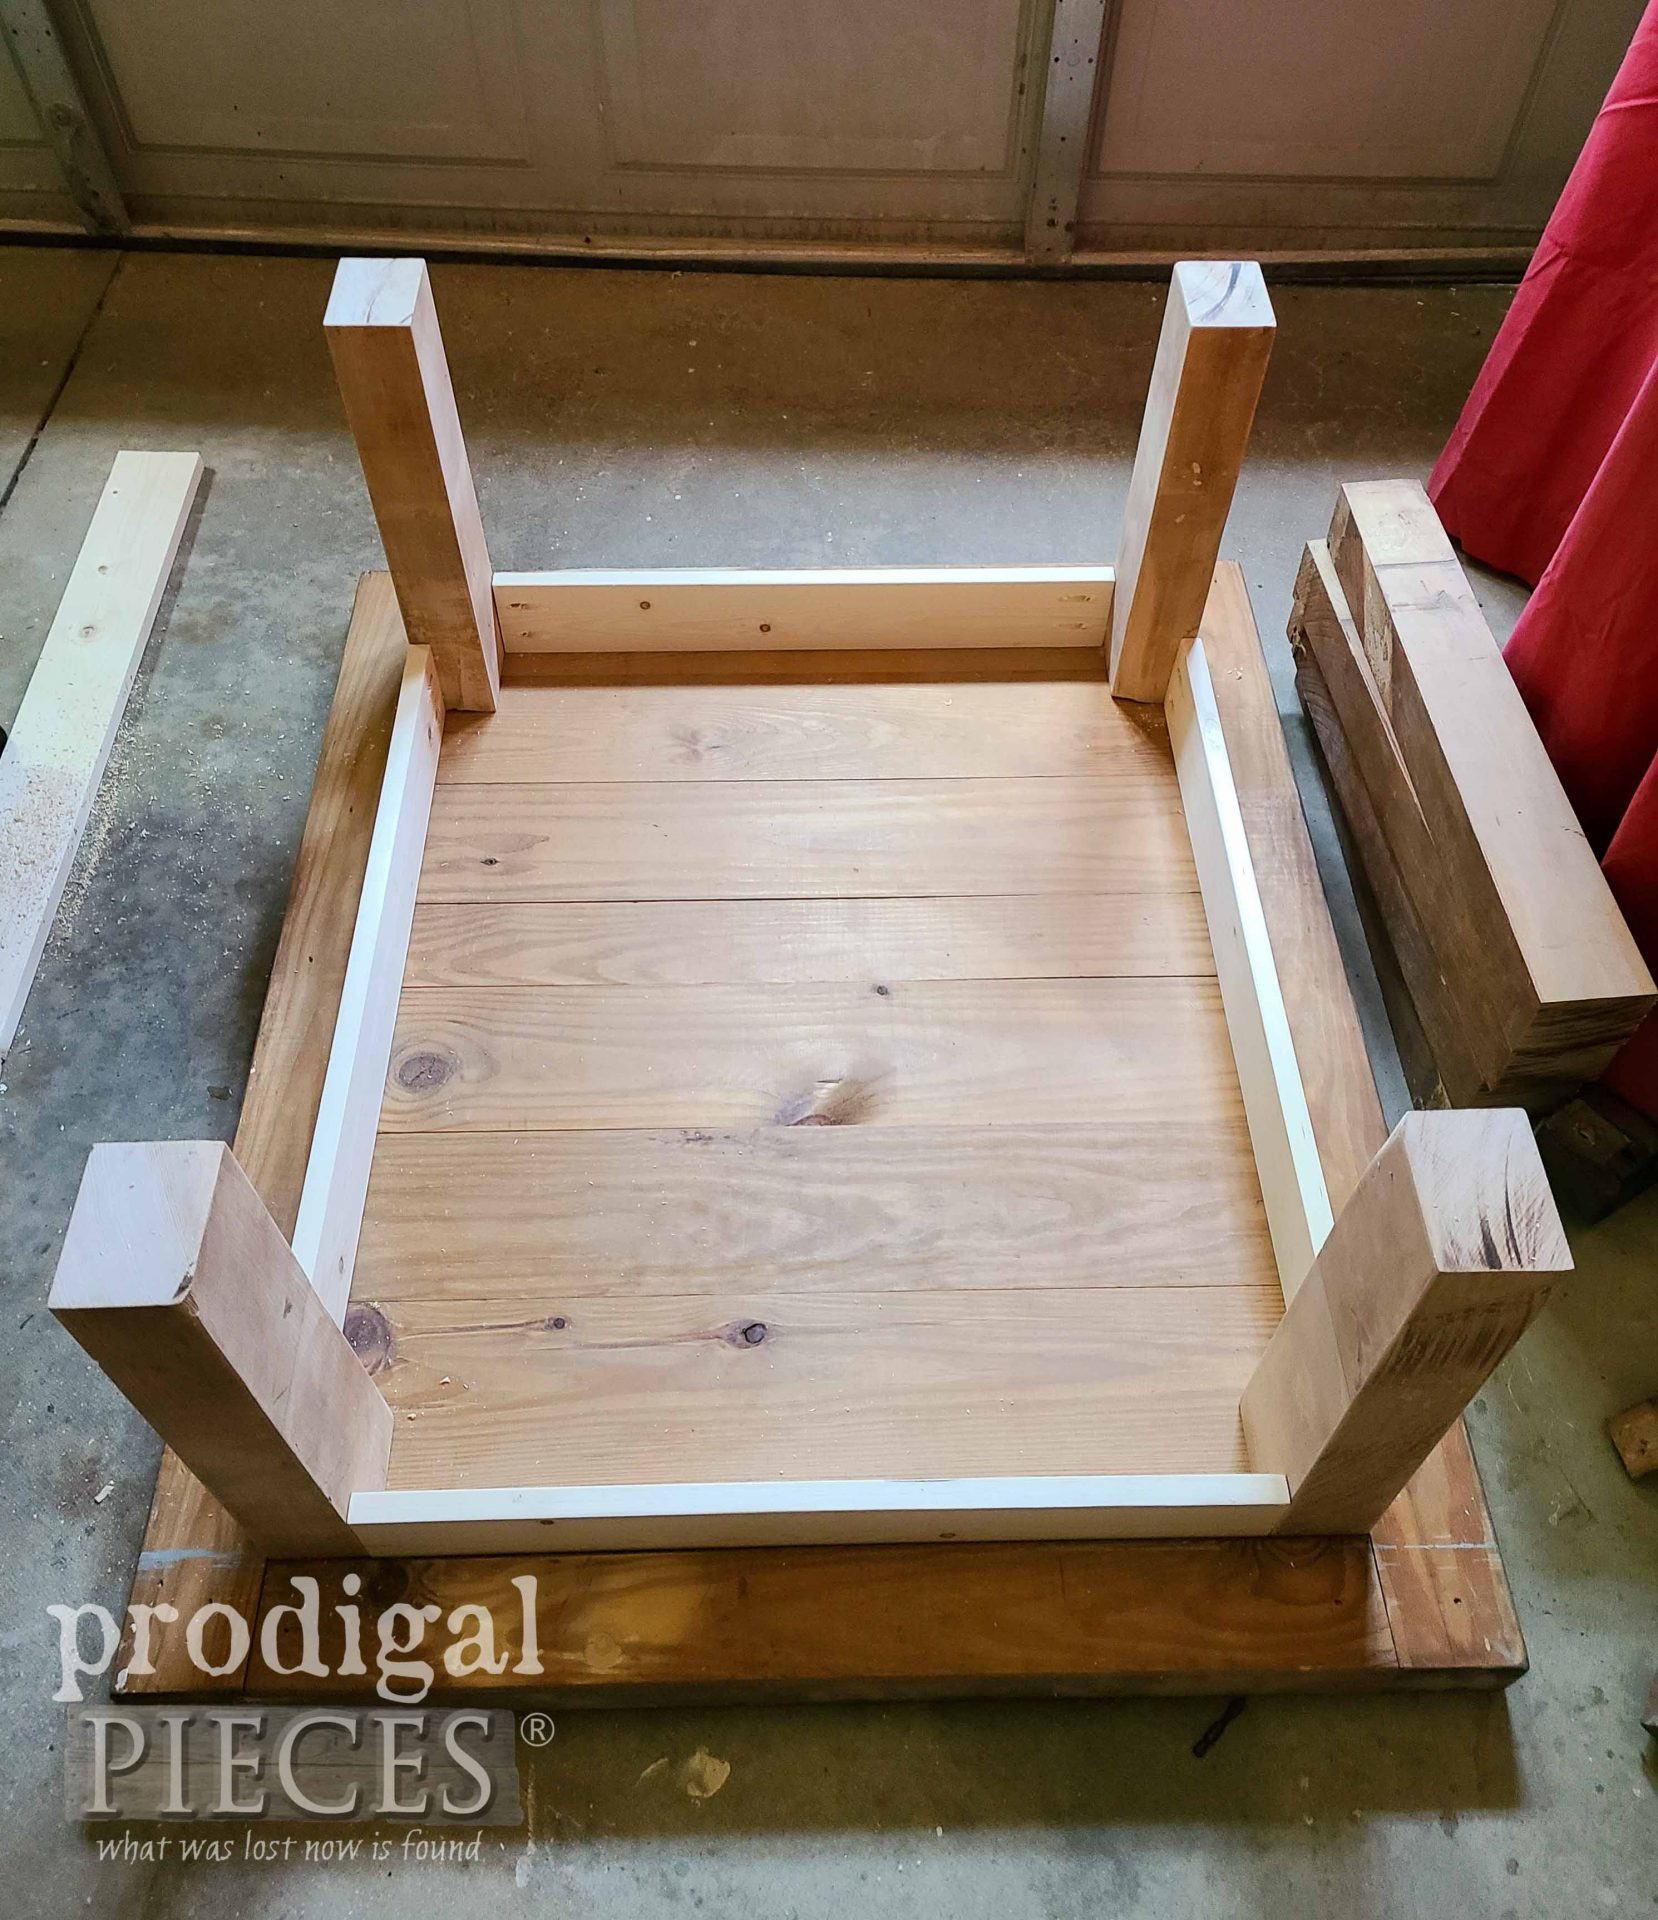 Dry Fit of Reclaimed Coffee Table by Prodigal Pieces   prodigalpieces.com #prodigalpieces